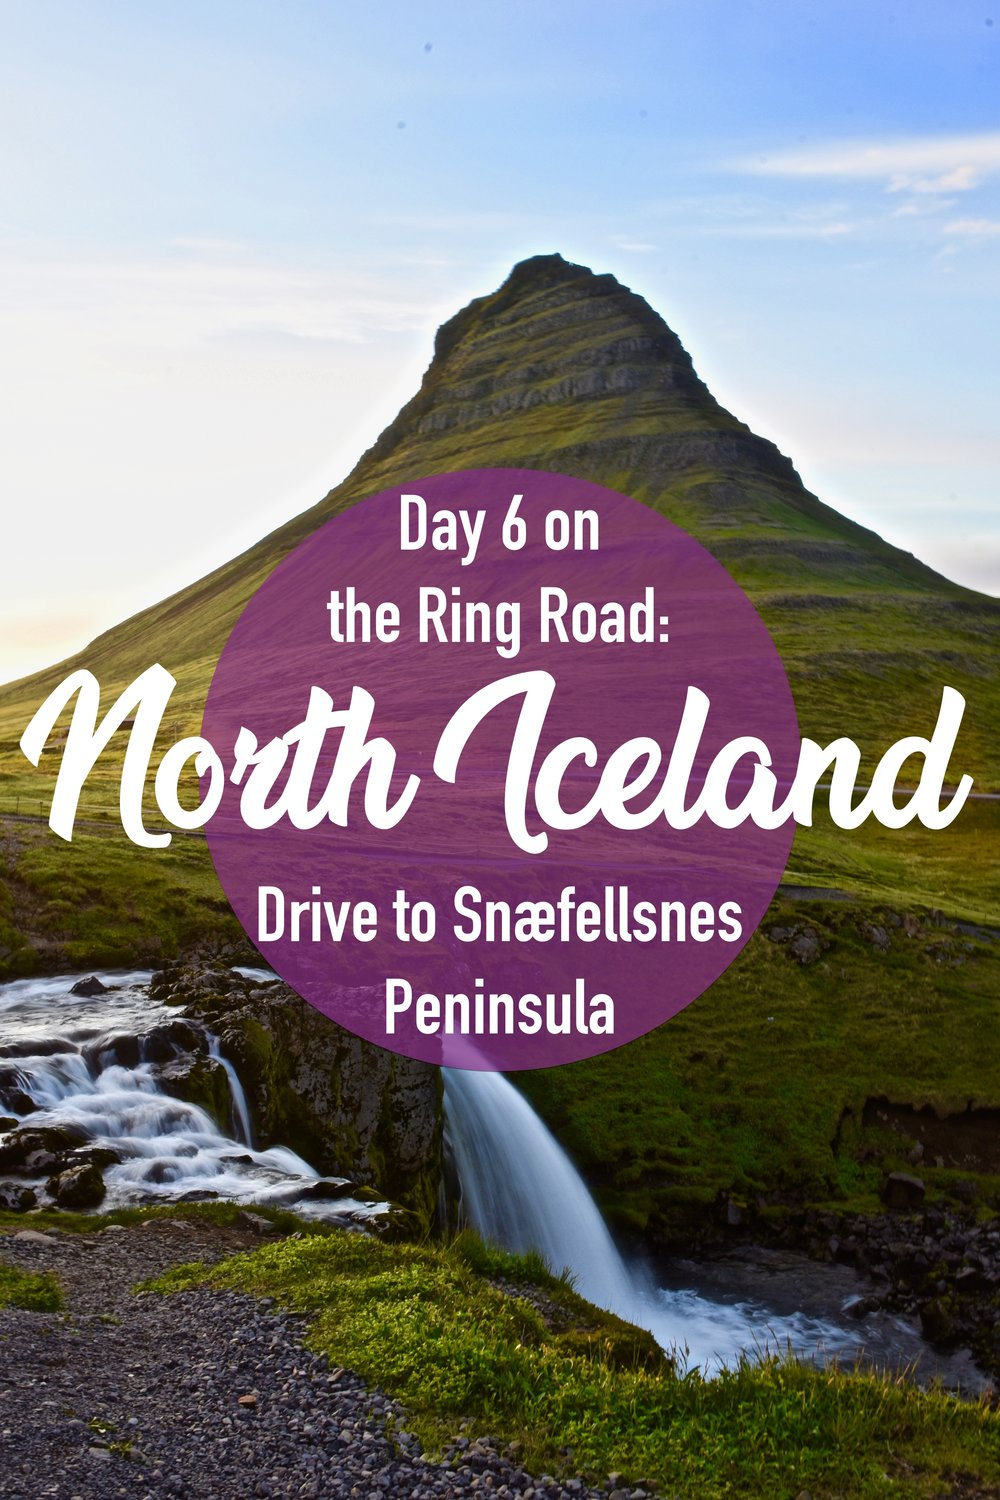 Driving through North Iceland on the Ring Road.  We went from Akureyri to Grundarfjördur to take a detour on the Snæfellsnes Peninsula. #northiceland #snæfellsnes #iceland #ringroad #europe #roadtrip #kirkjufell